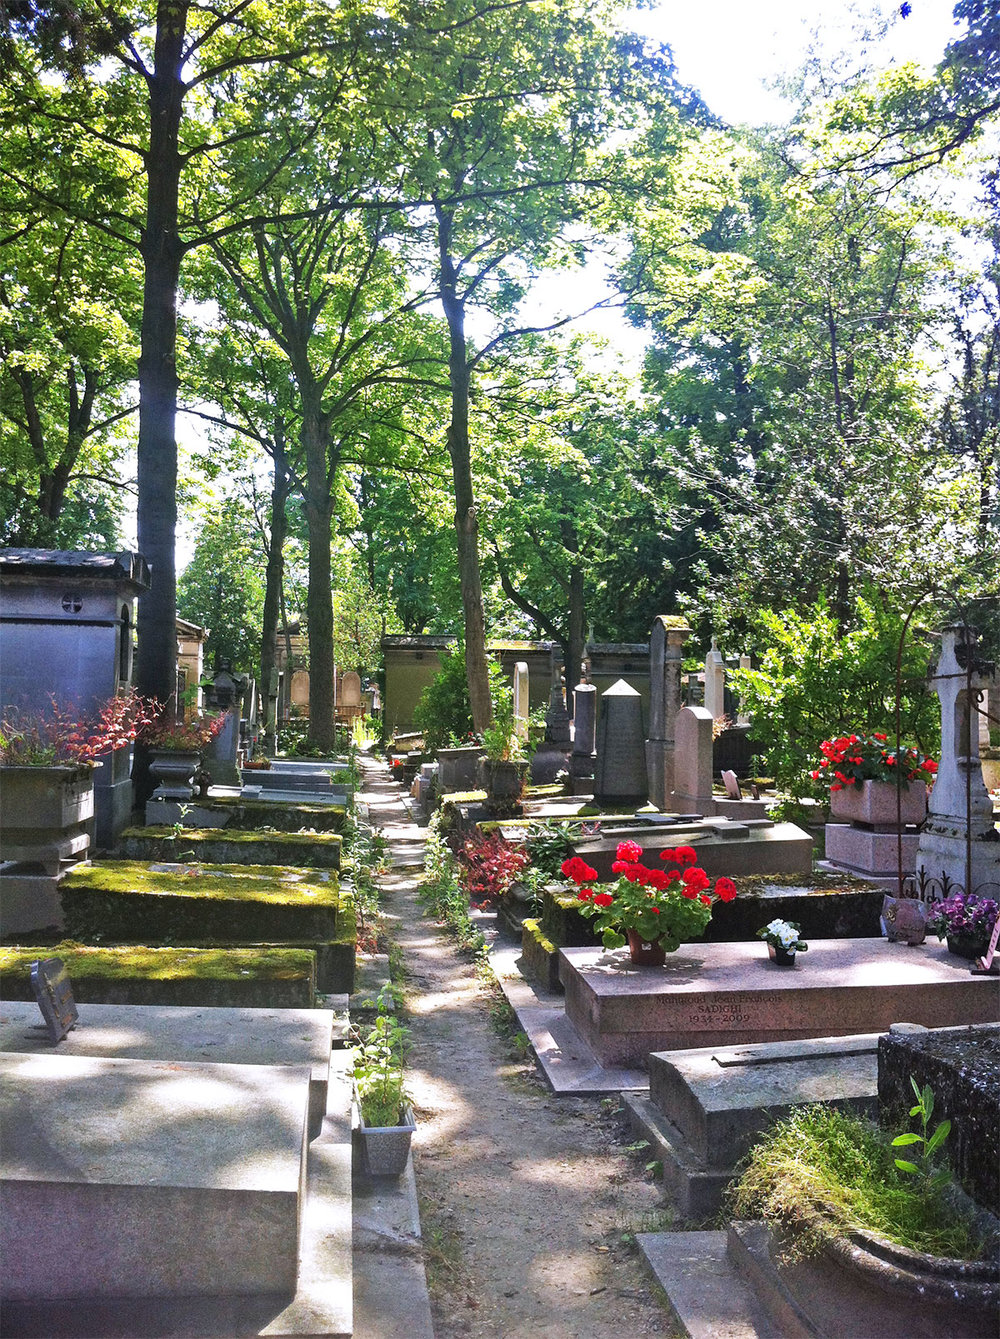 Paris pere lachaise cemetery | Paris Neighborhoods Explained